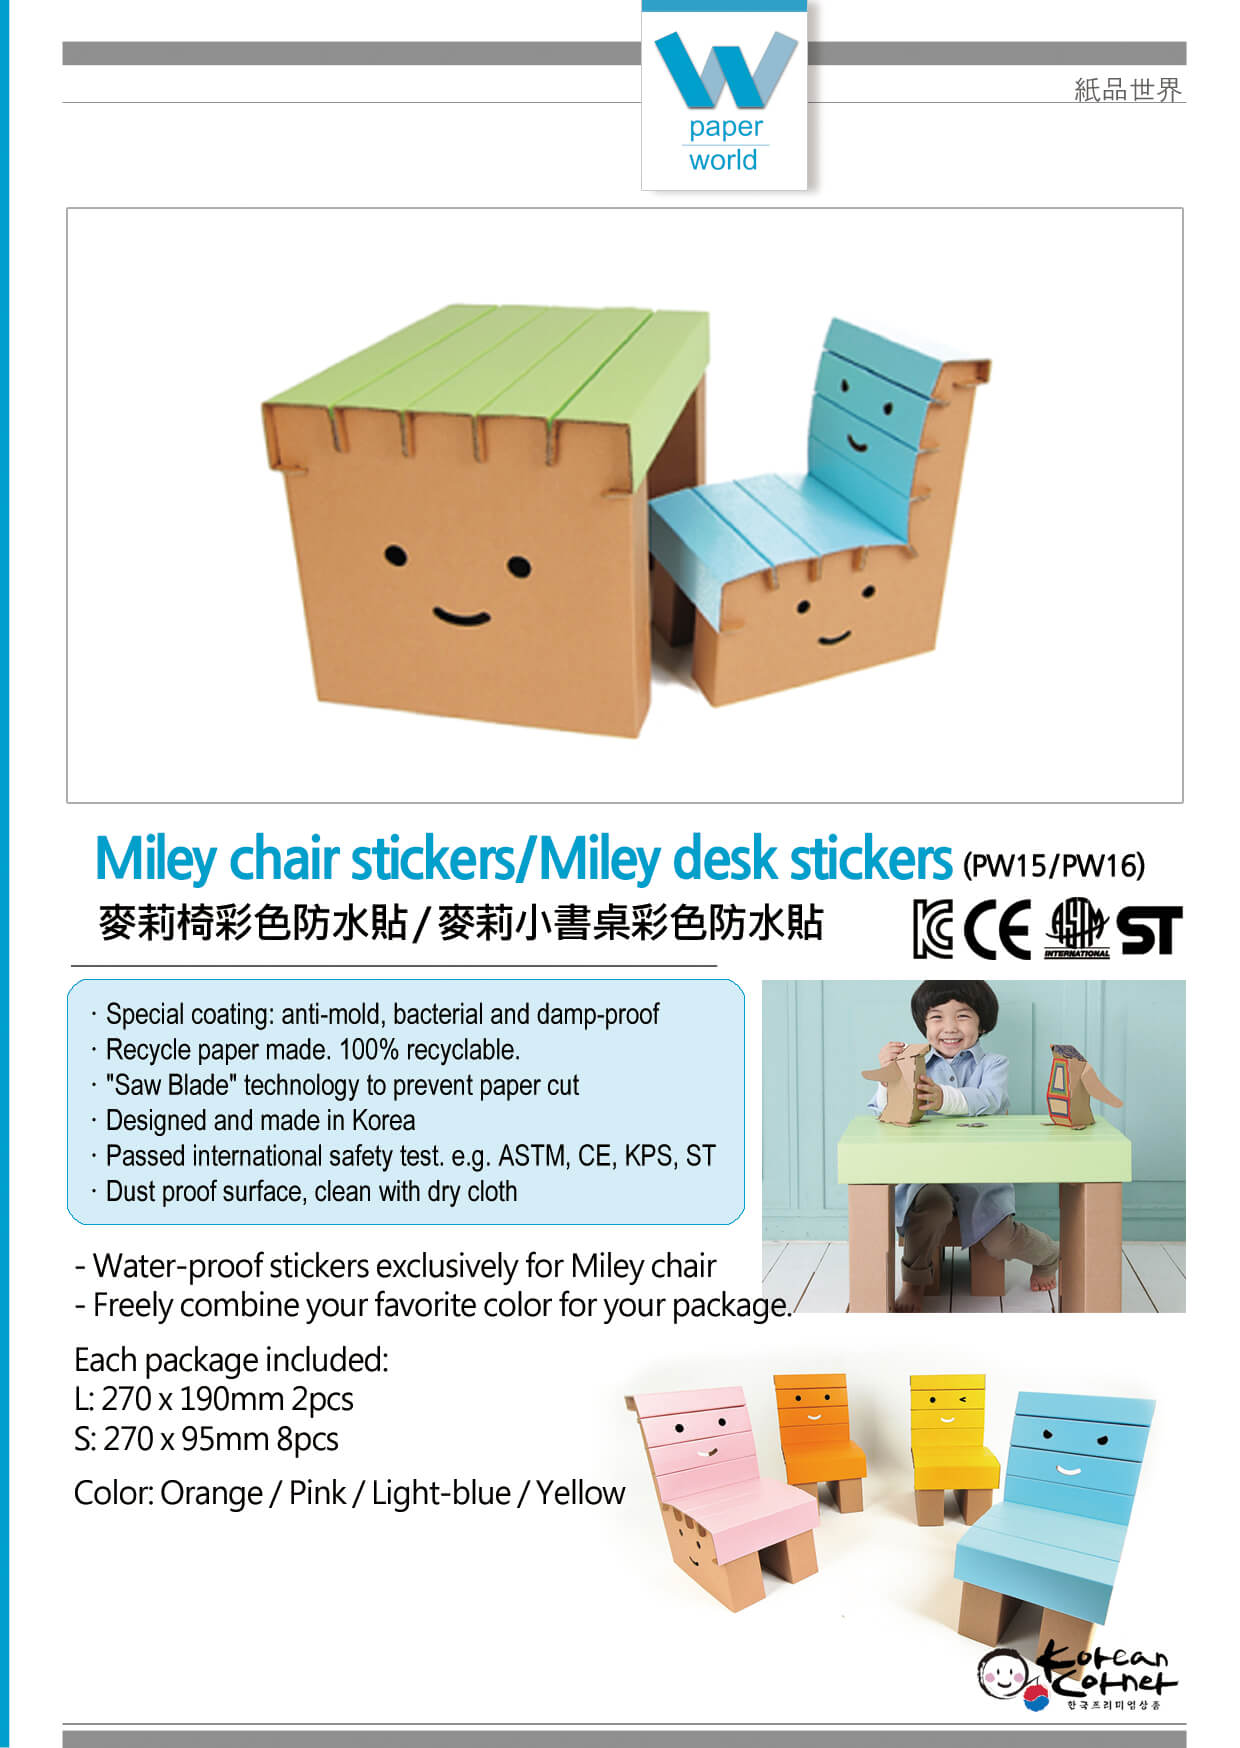 Miley chair stickers